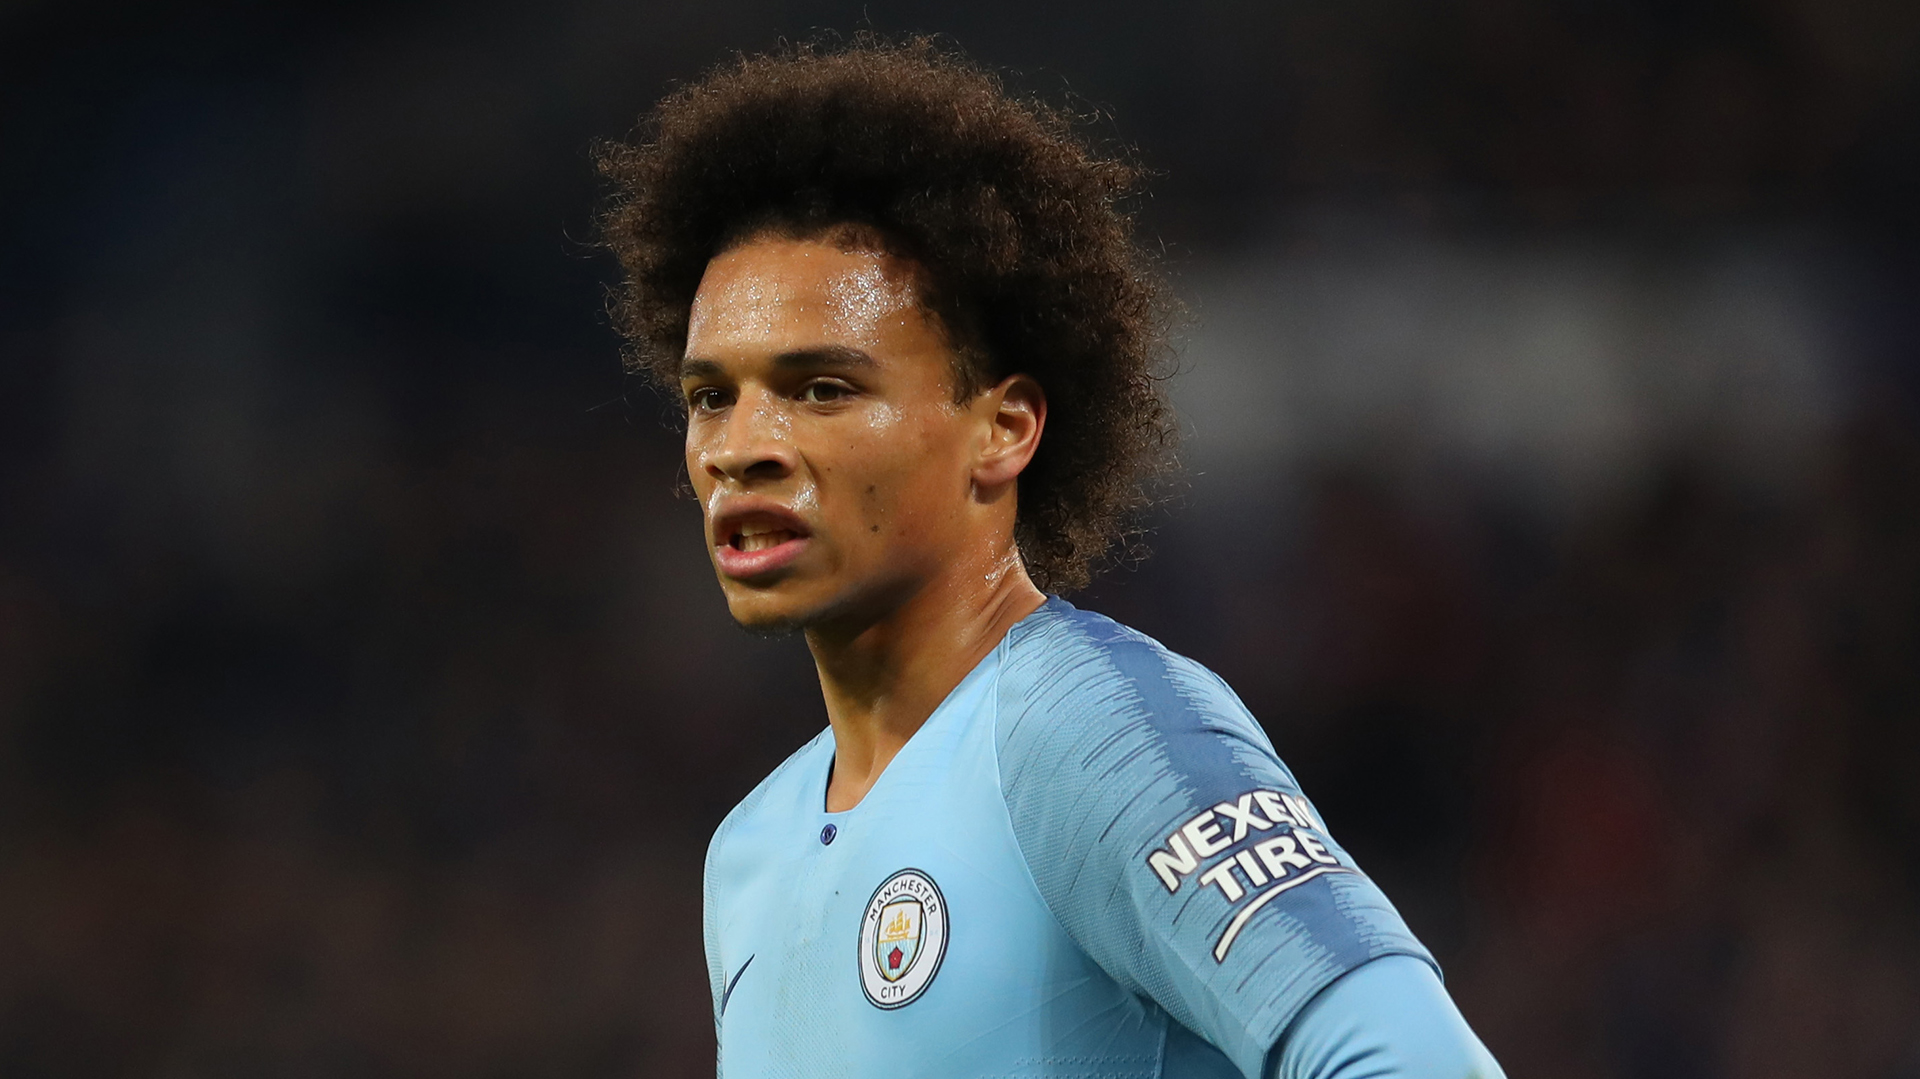 Leroy Sane Man City 2018-19